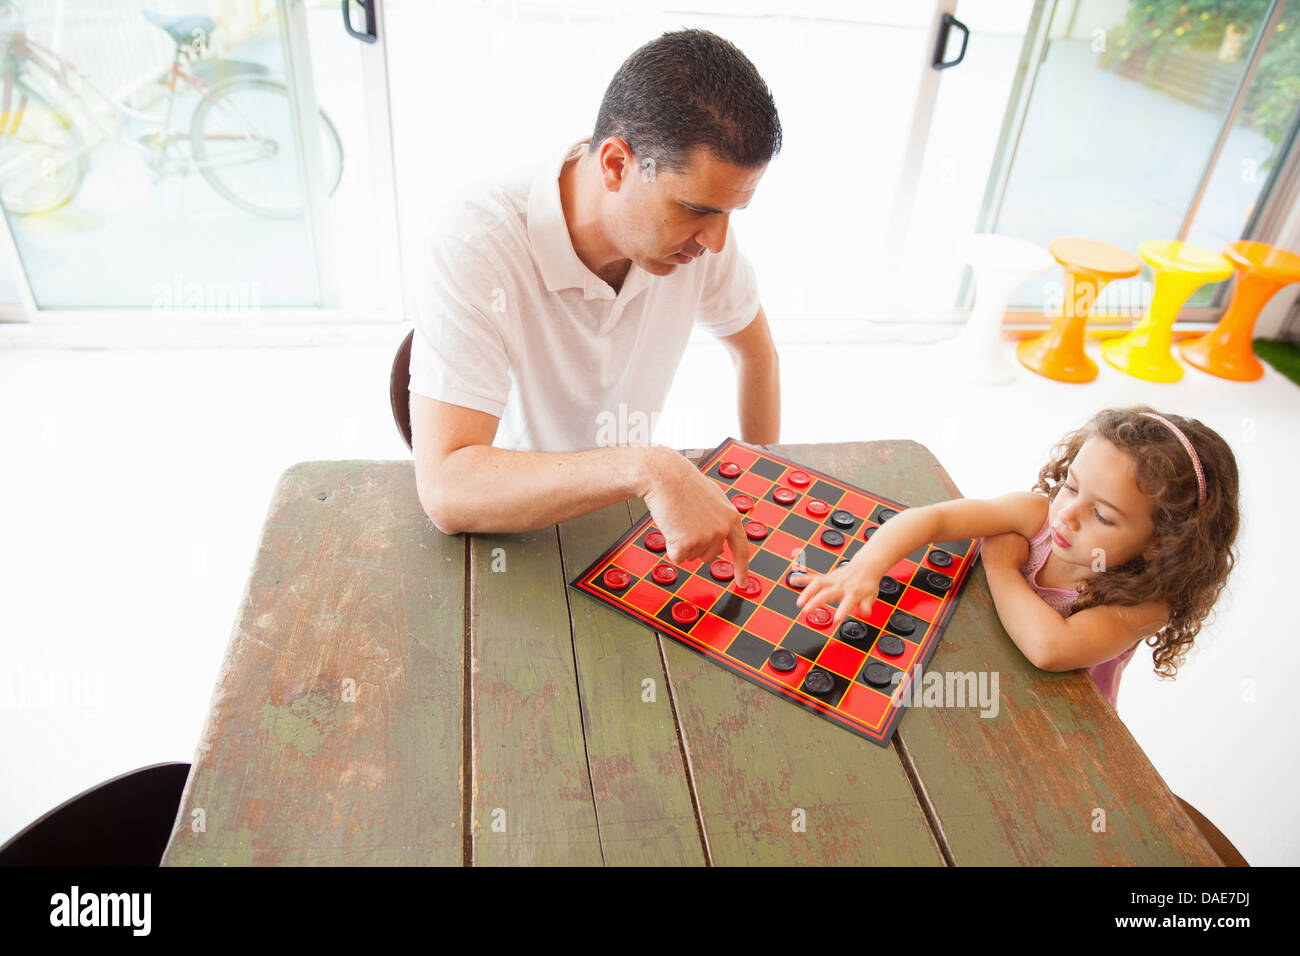 Father and daughter playing draughts - Stock Image